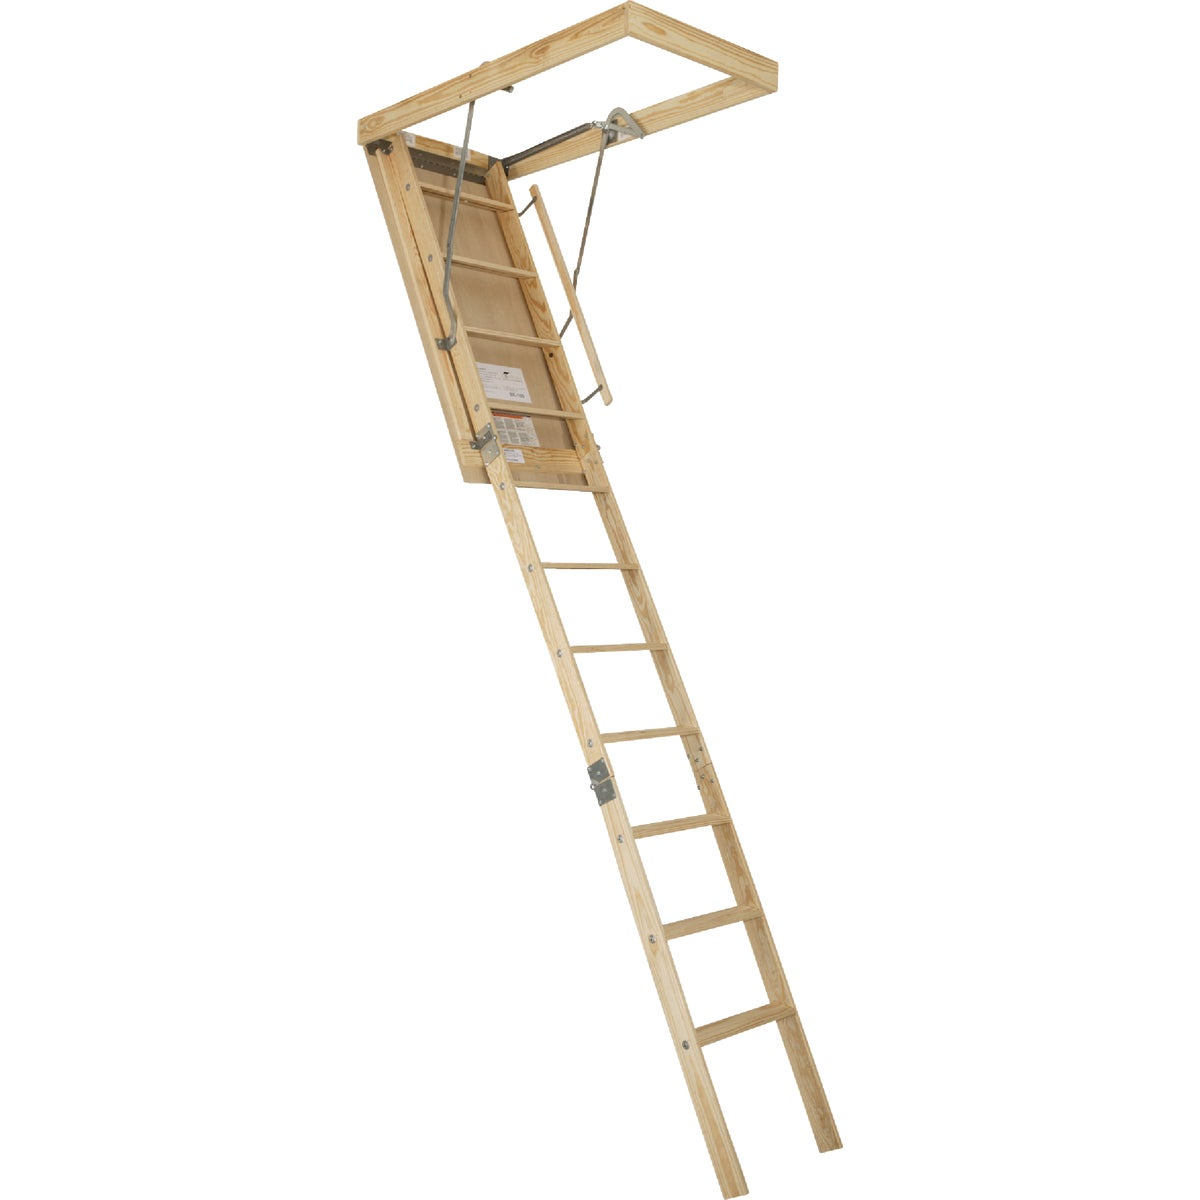 25X120 WNDSR ATTIC STAIR - BE100 by Louisville Ladder